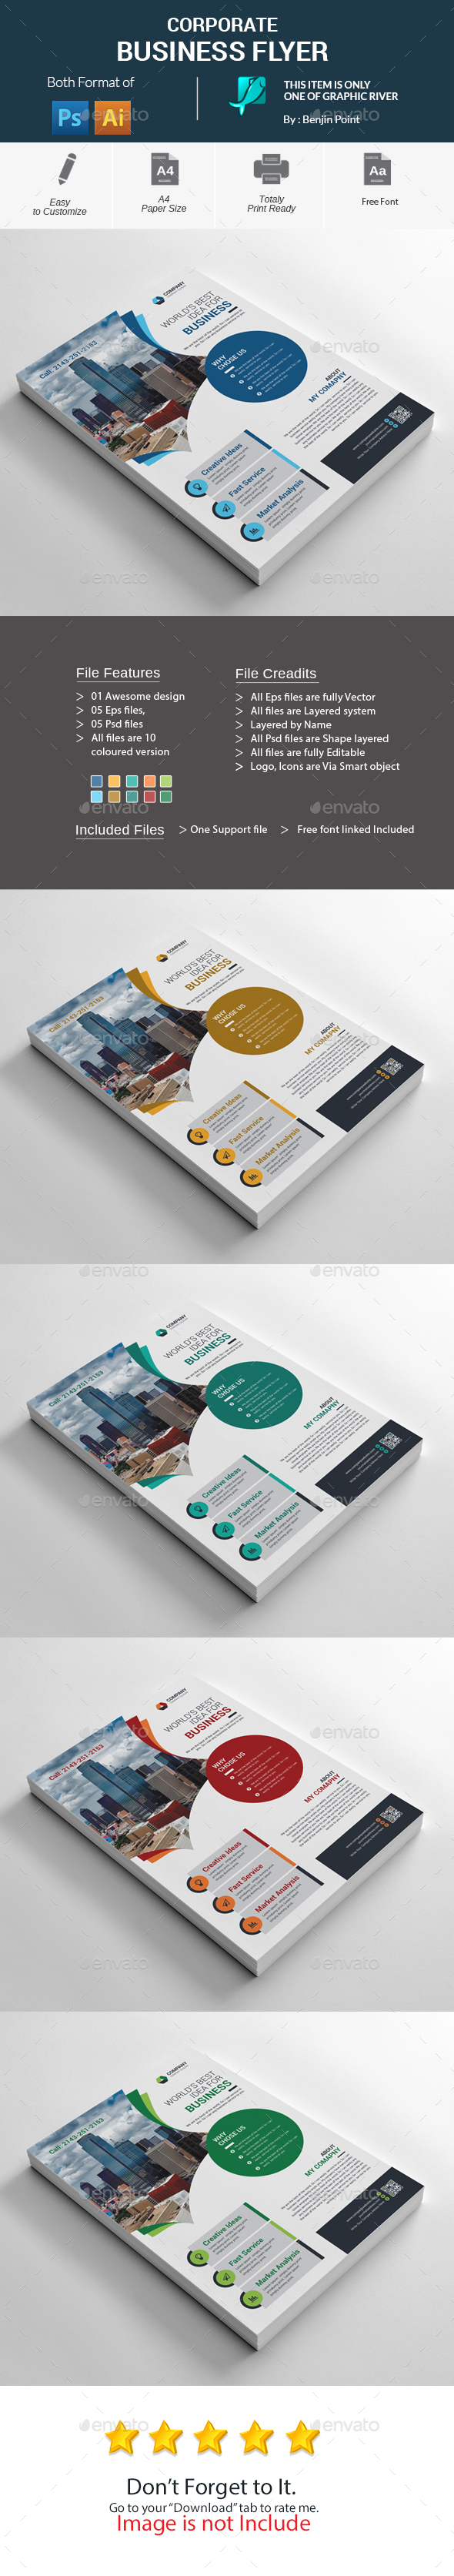 GraphicRiver Corporate Business Flyer 20674193